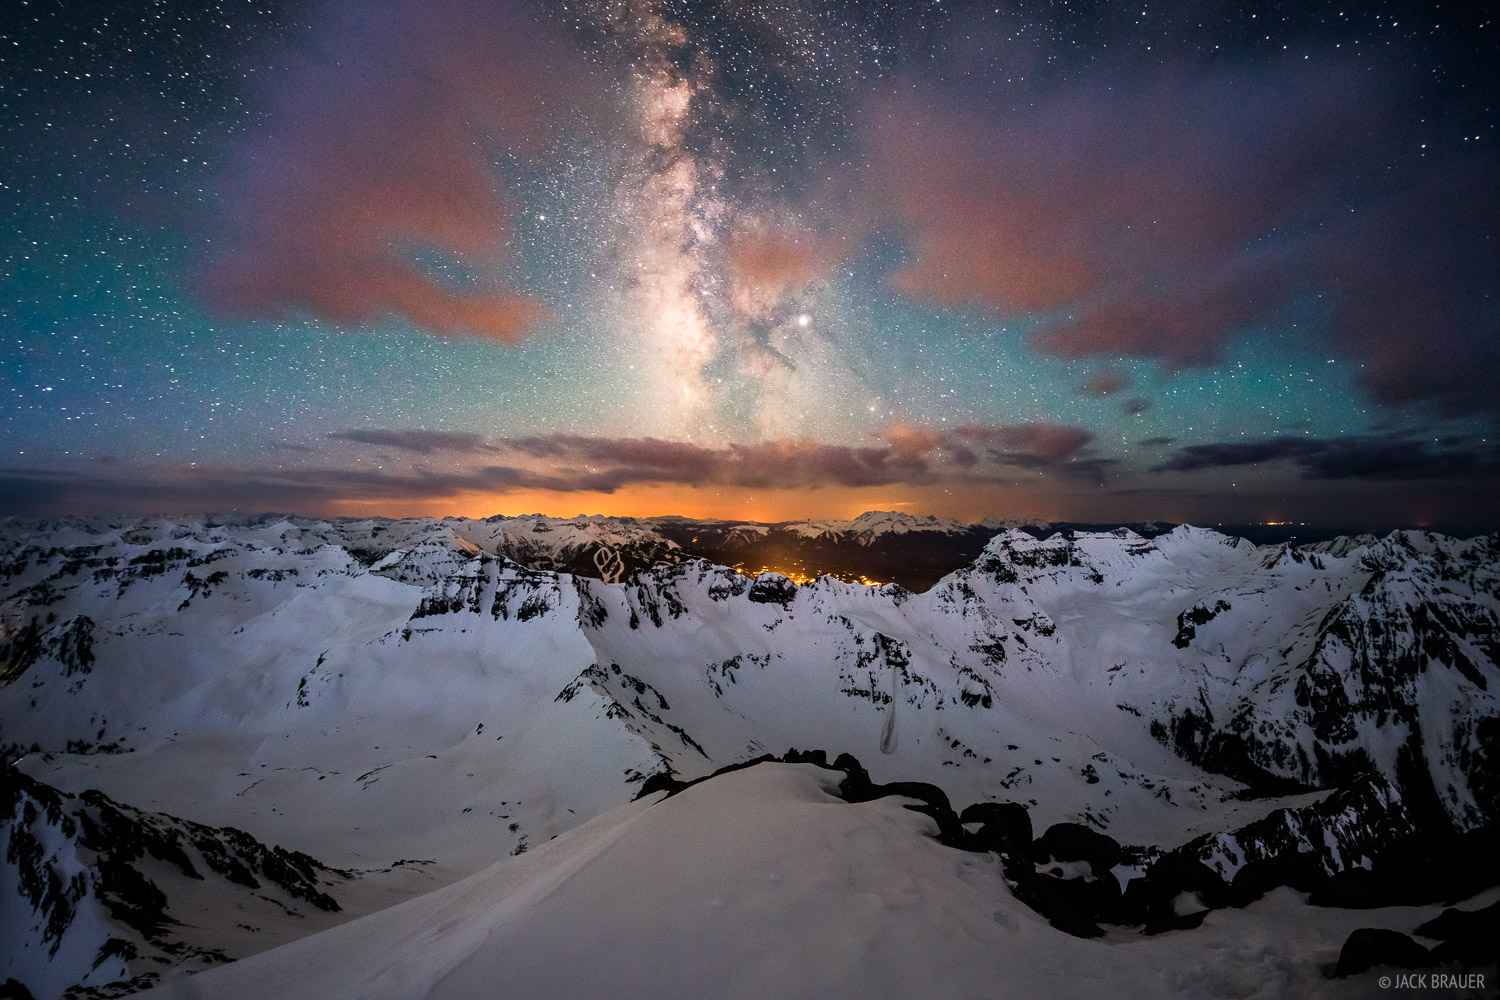 Colorado, Mt. Sneffels, San Juan Mountains, Sneffels Range, summit, Milky Way, Telluride, photo